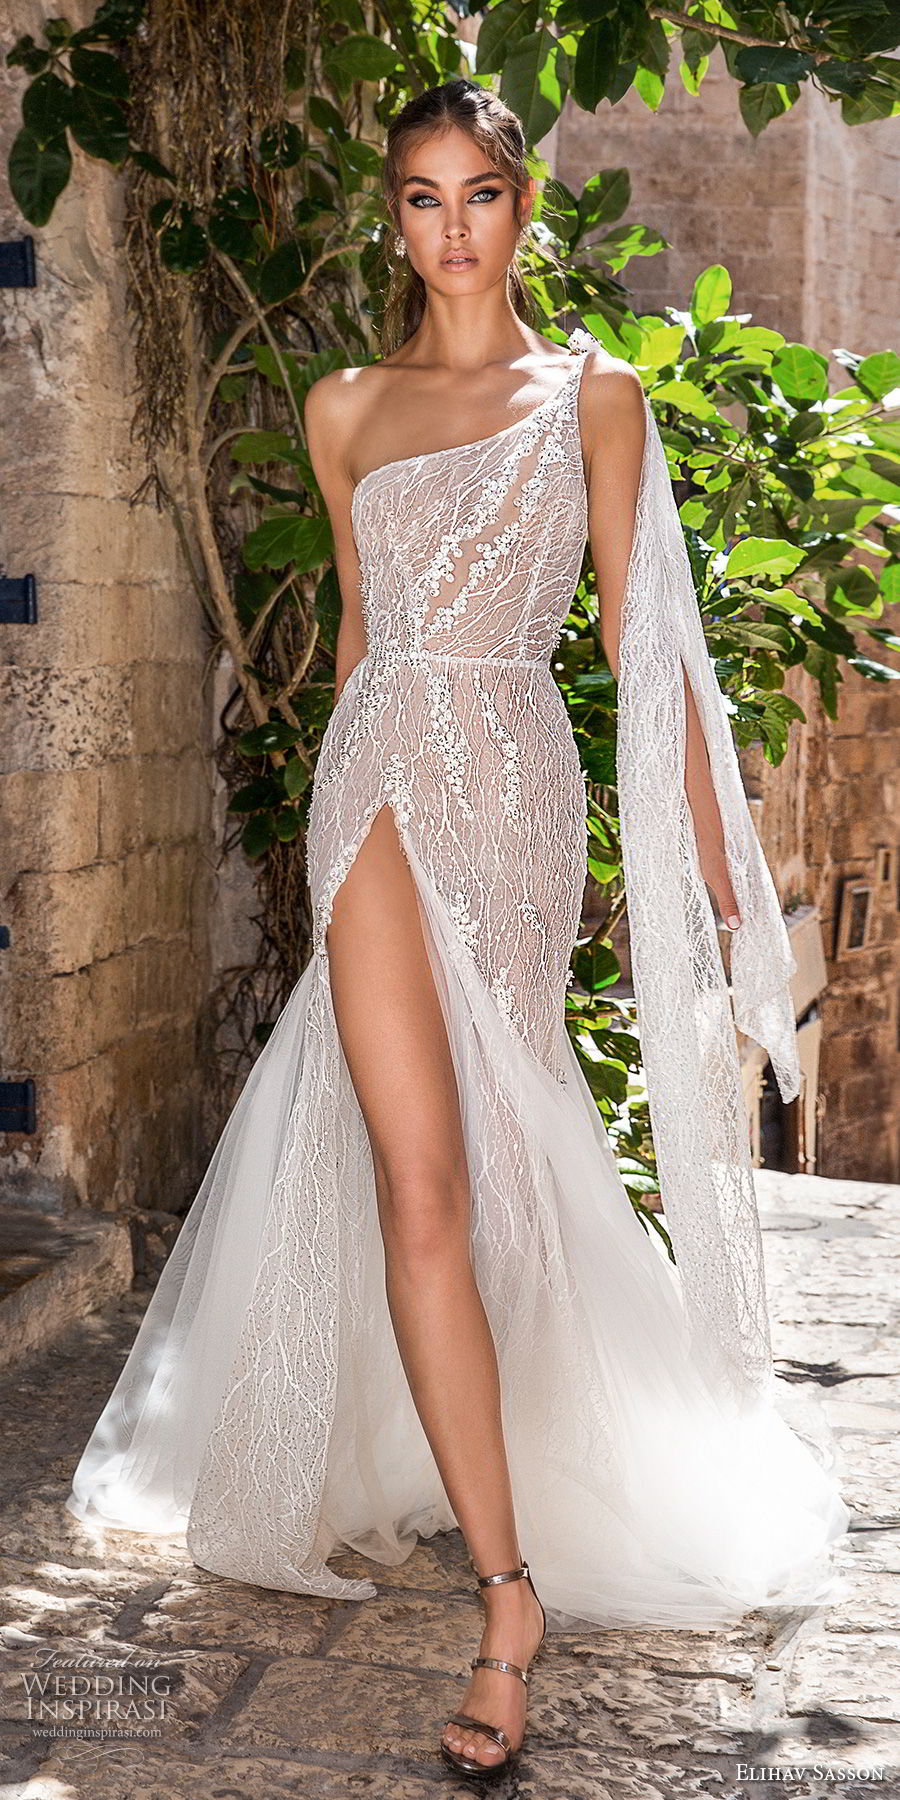 elihav sasson 2018 capsule bridal sleeveless one shoulder full embellishment high slit romantic sexy soft a  line wedding dress low open back chapel train (2) mv